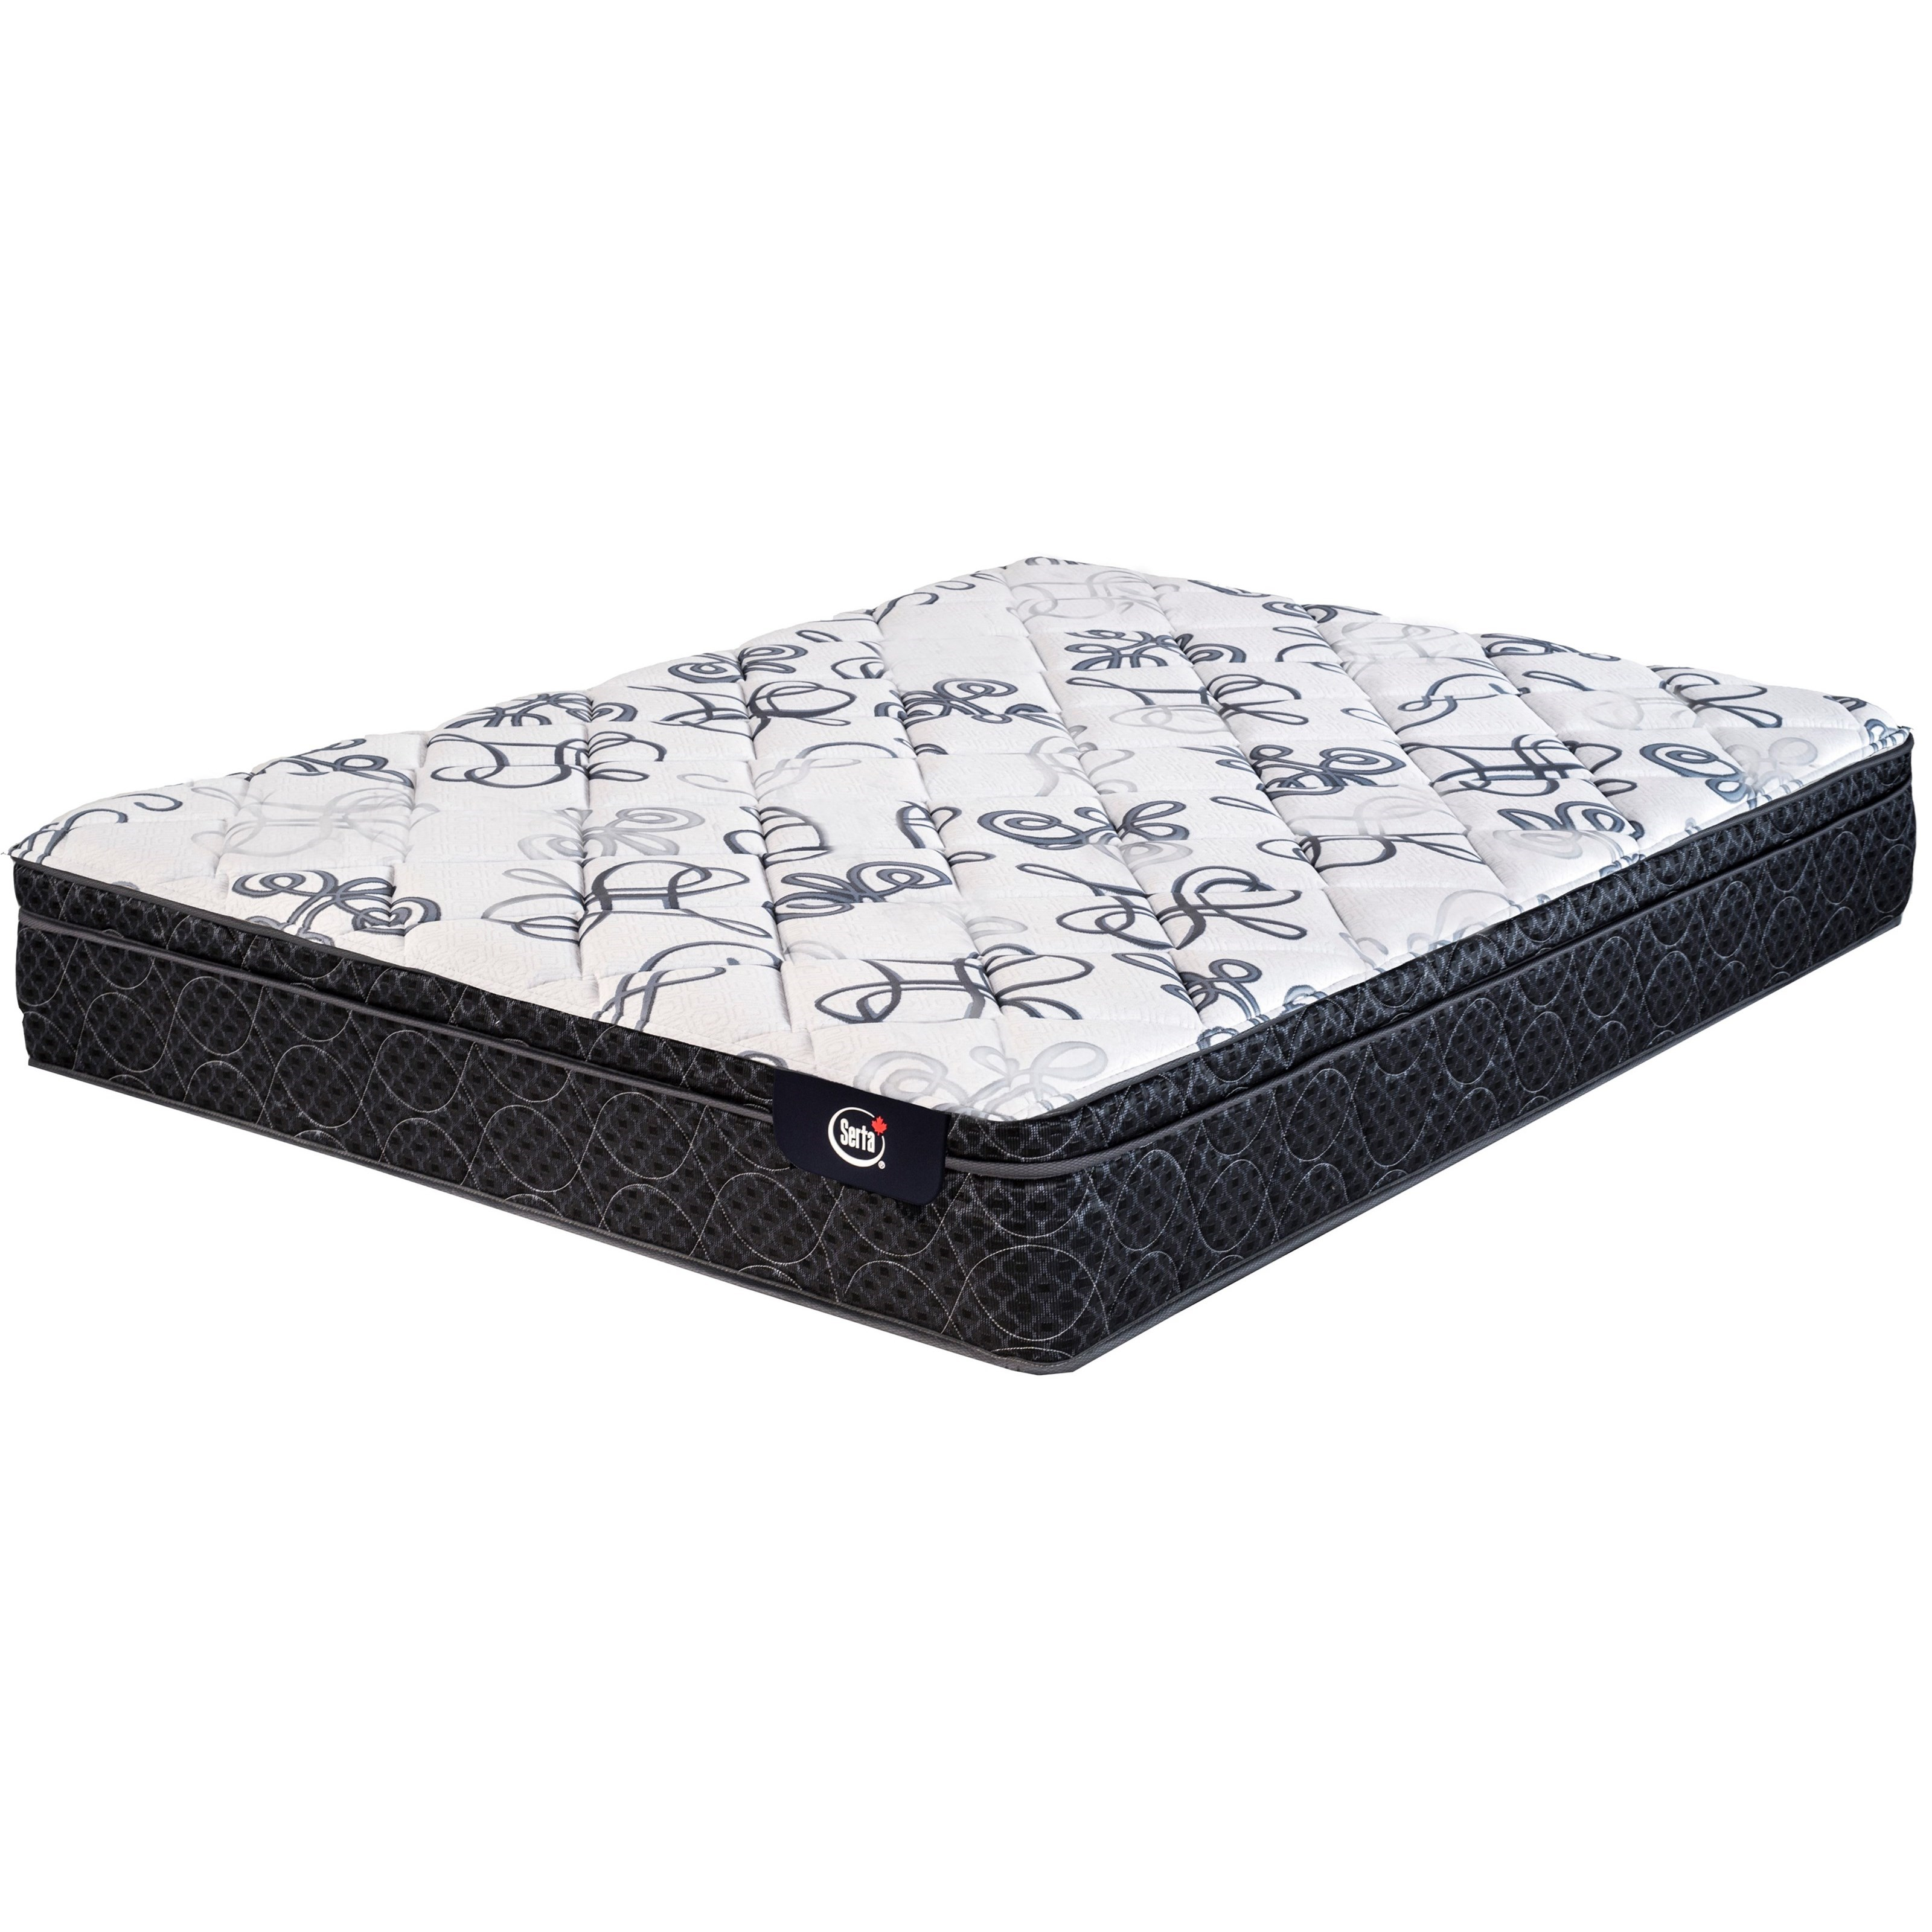 Full Special Purchase Euro Top Mattress